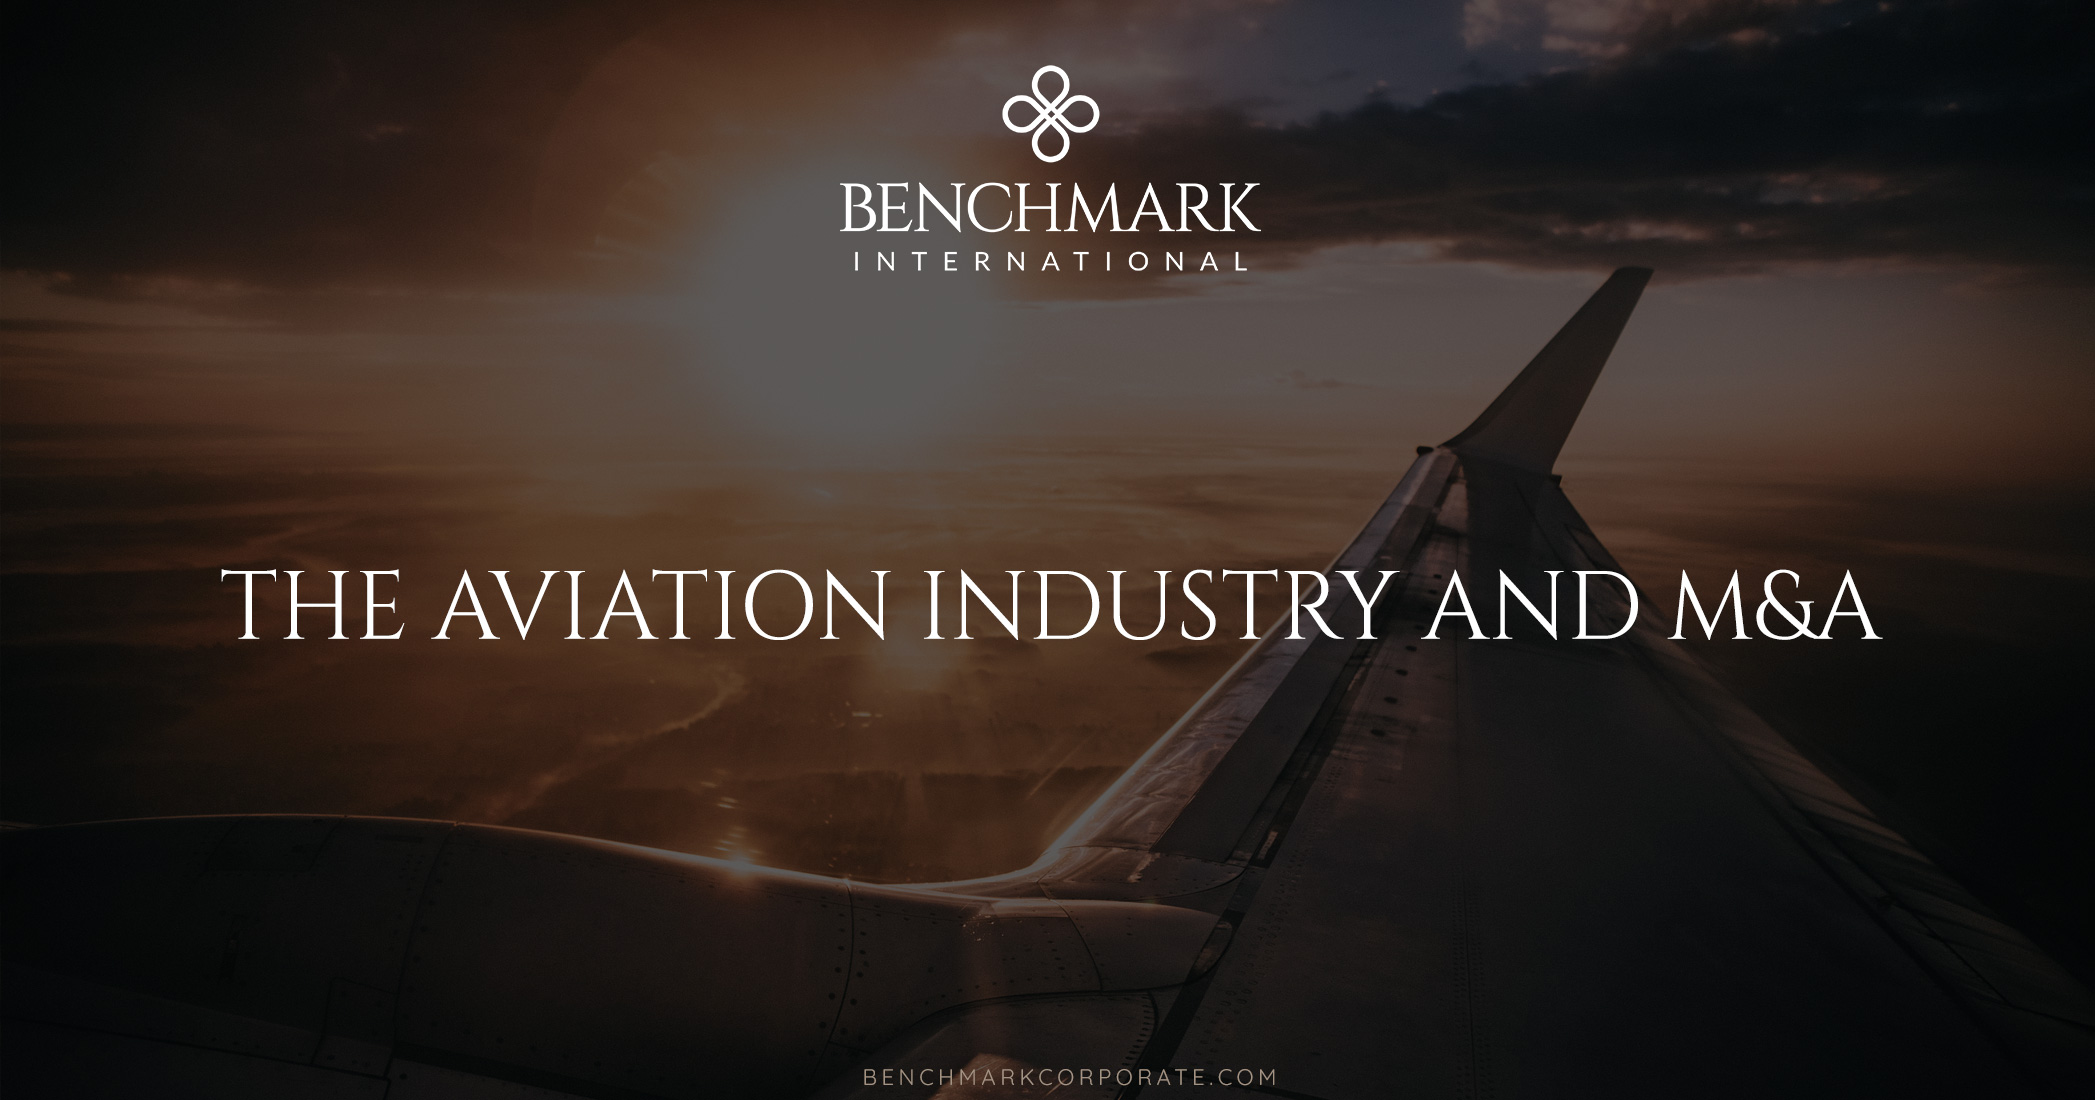 The Aviation Industry and M&A